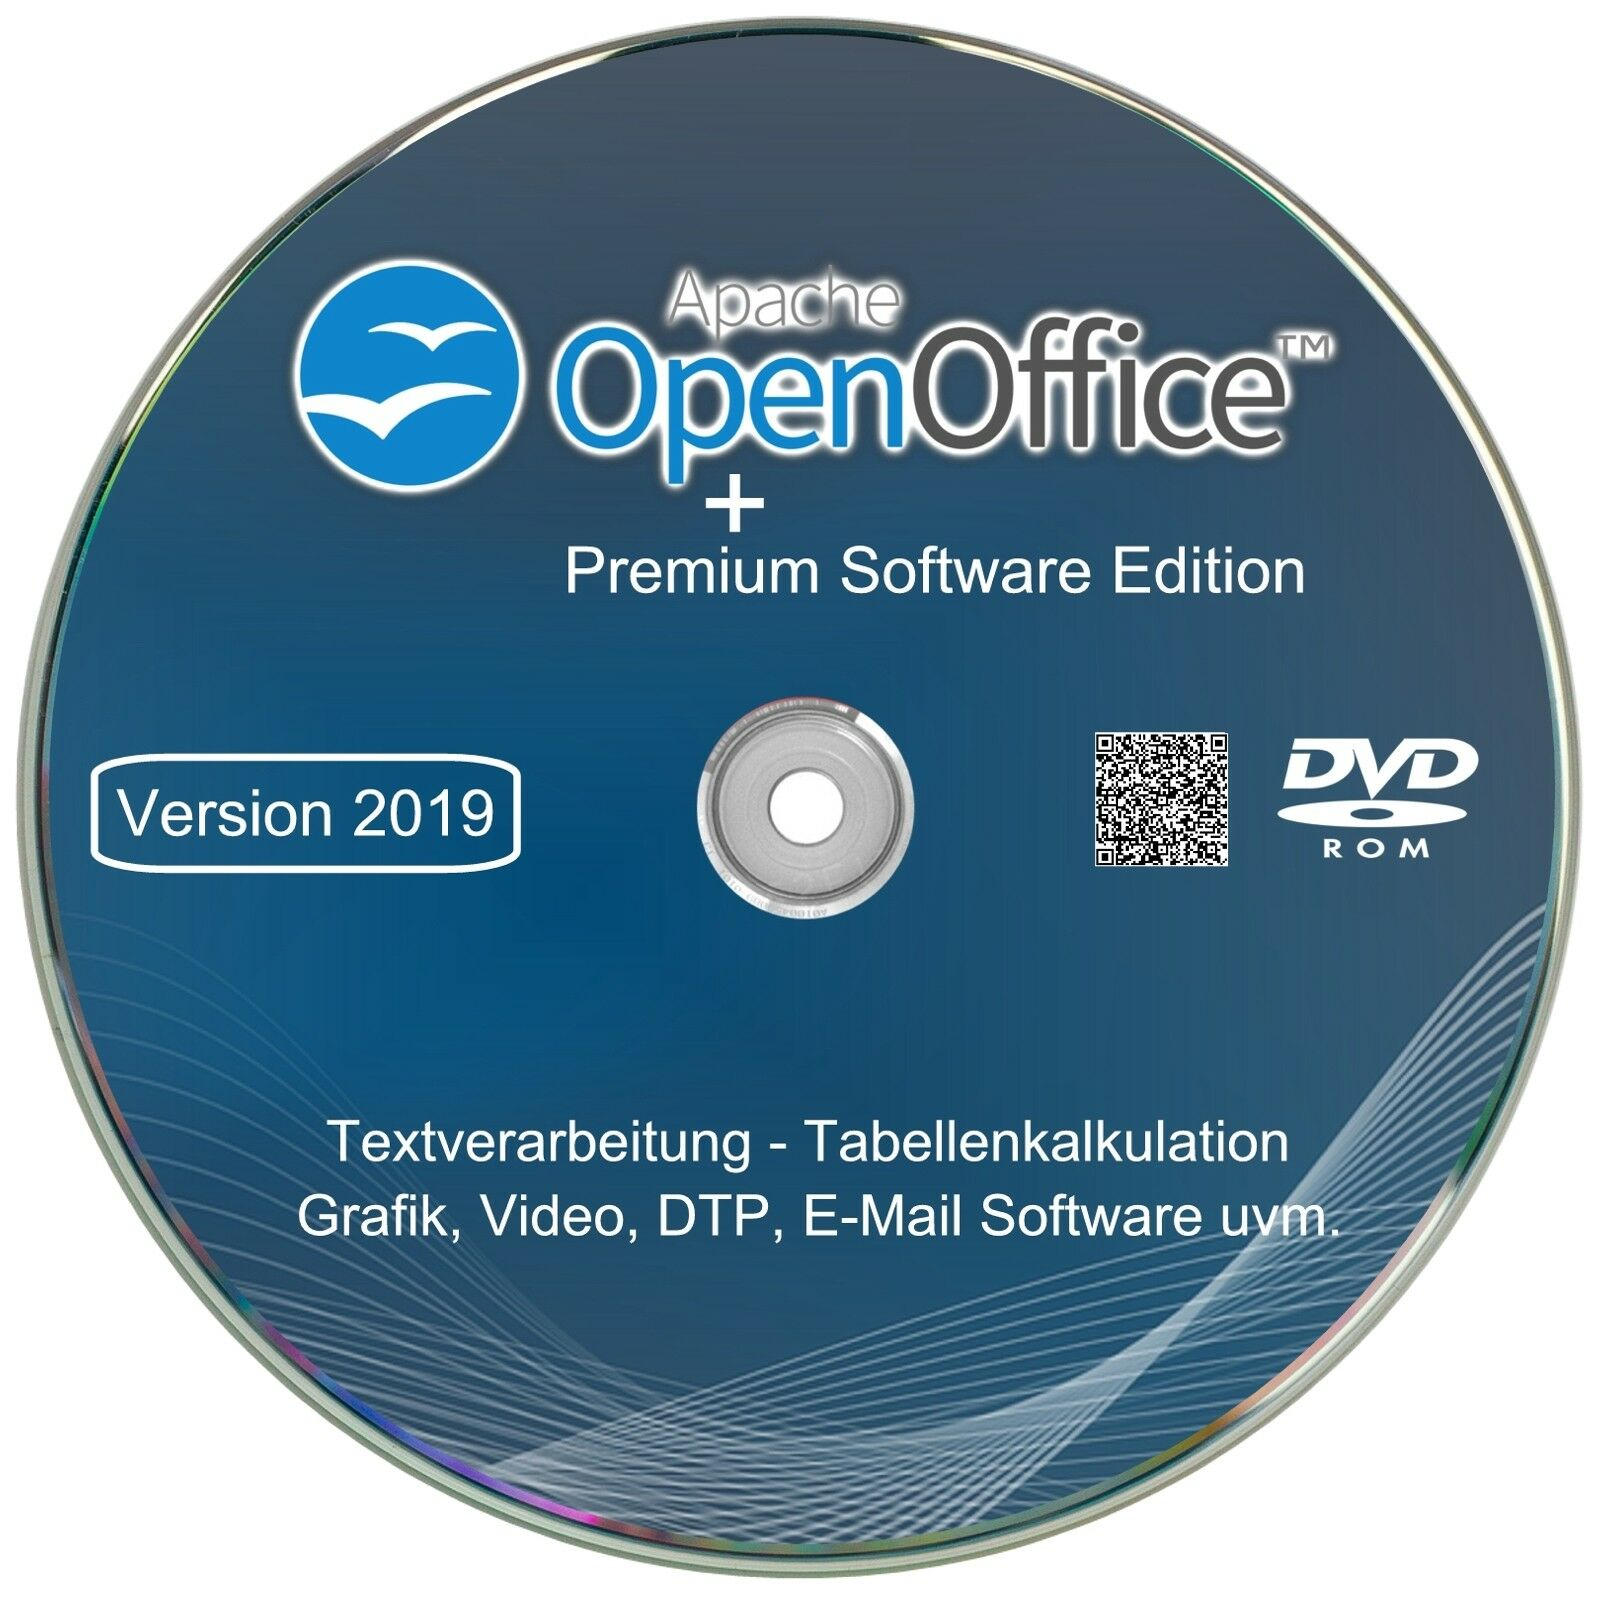 Open Office 2019 Premium for Windows 10, 8, 7 writing ...